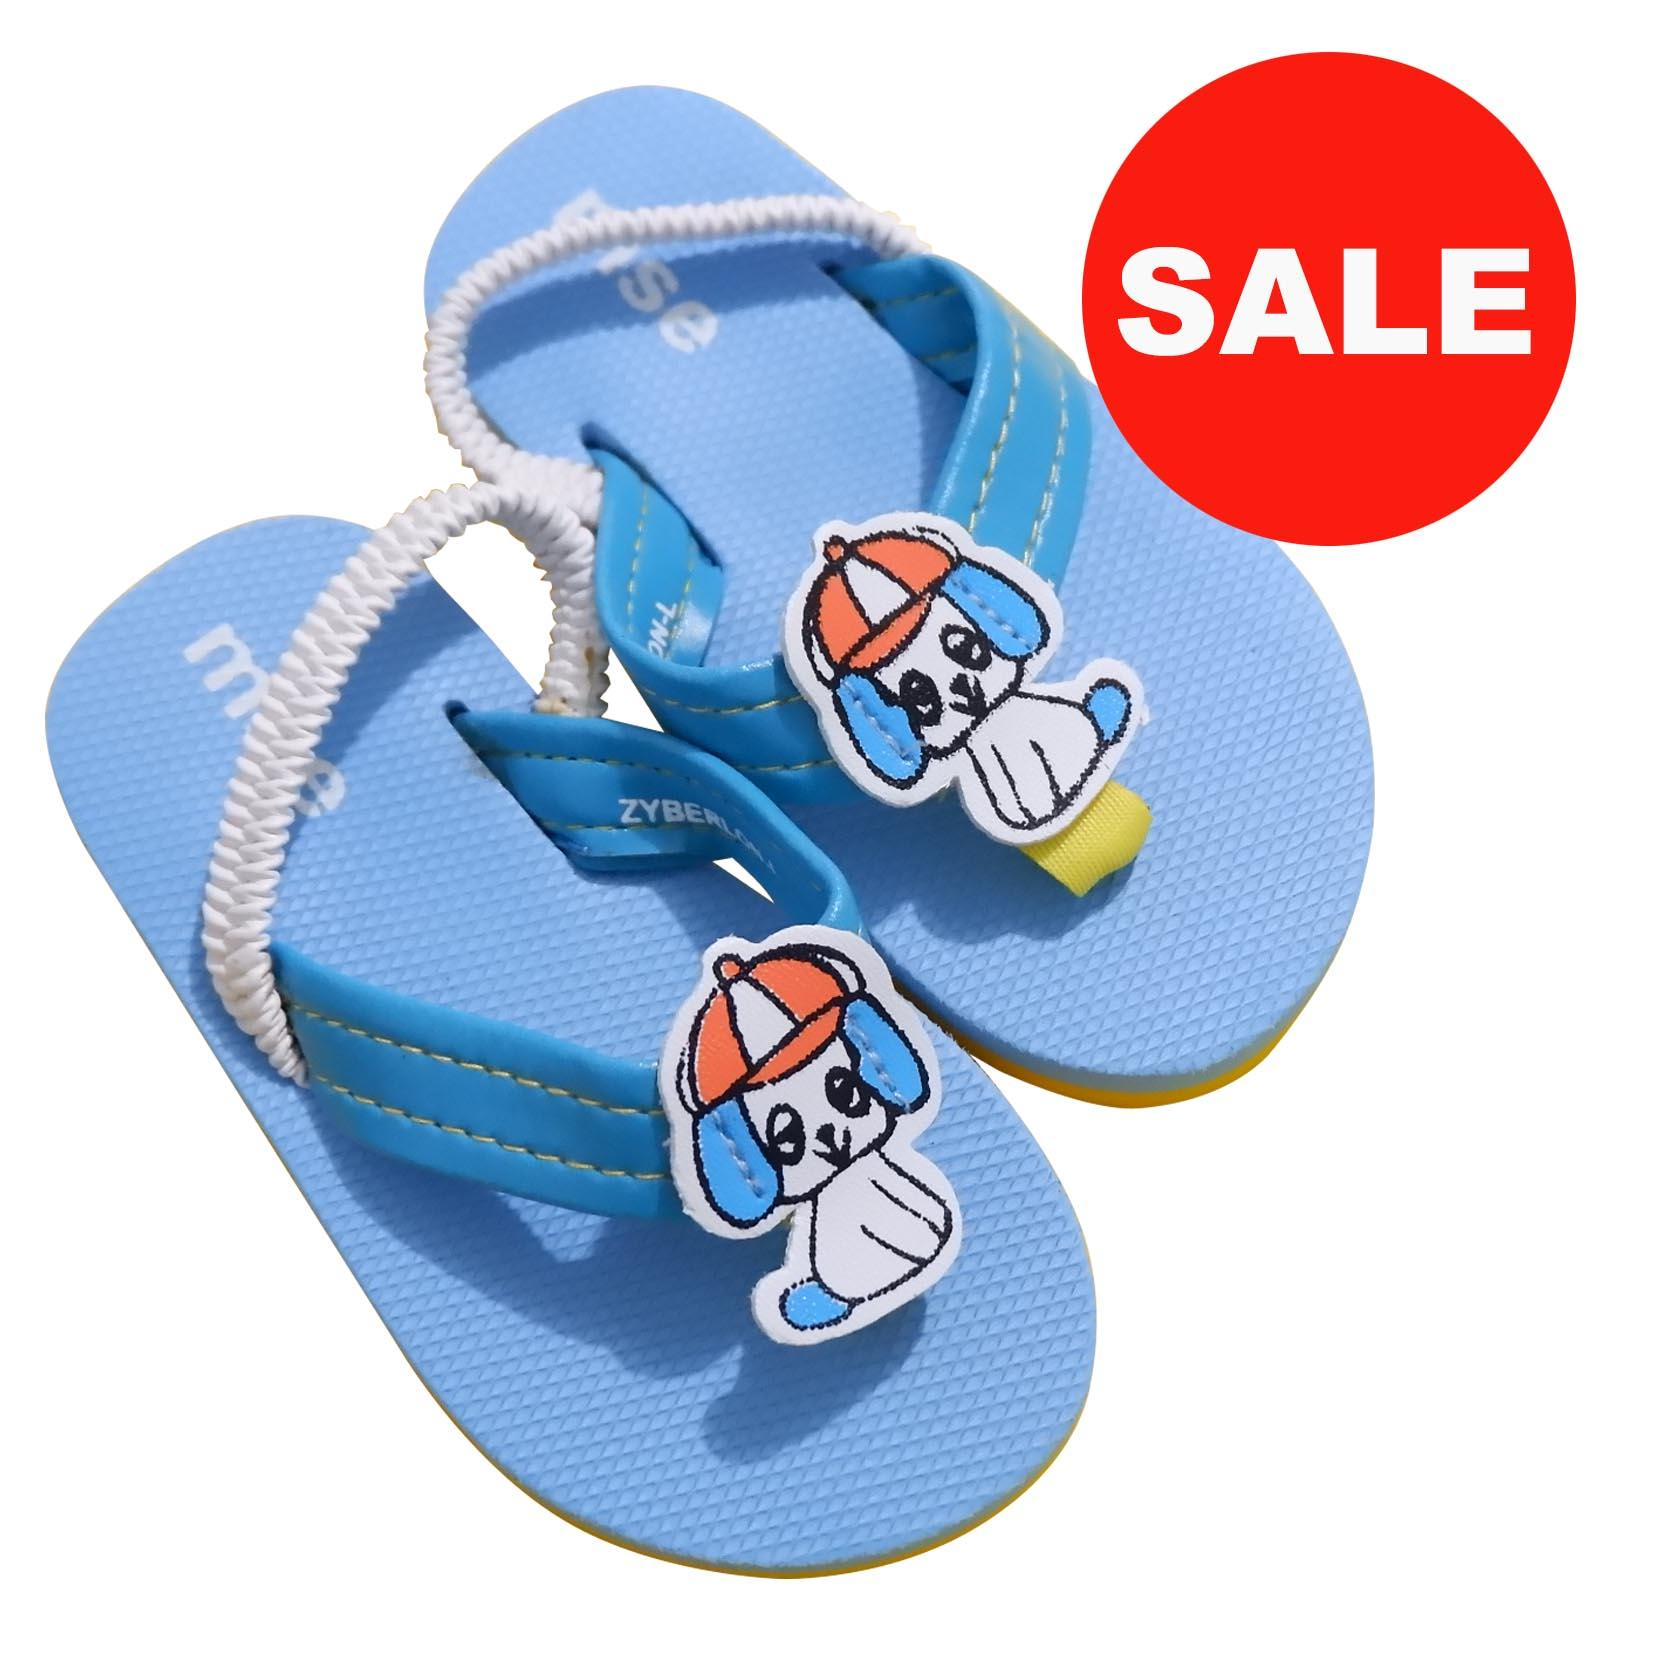 5766cc097c0f Baby Boys Kids Sandals Cute Comfortable Style for Boys with Nylon Strap    Cute Cartoon Patch